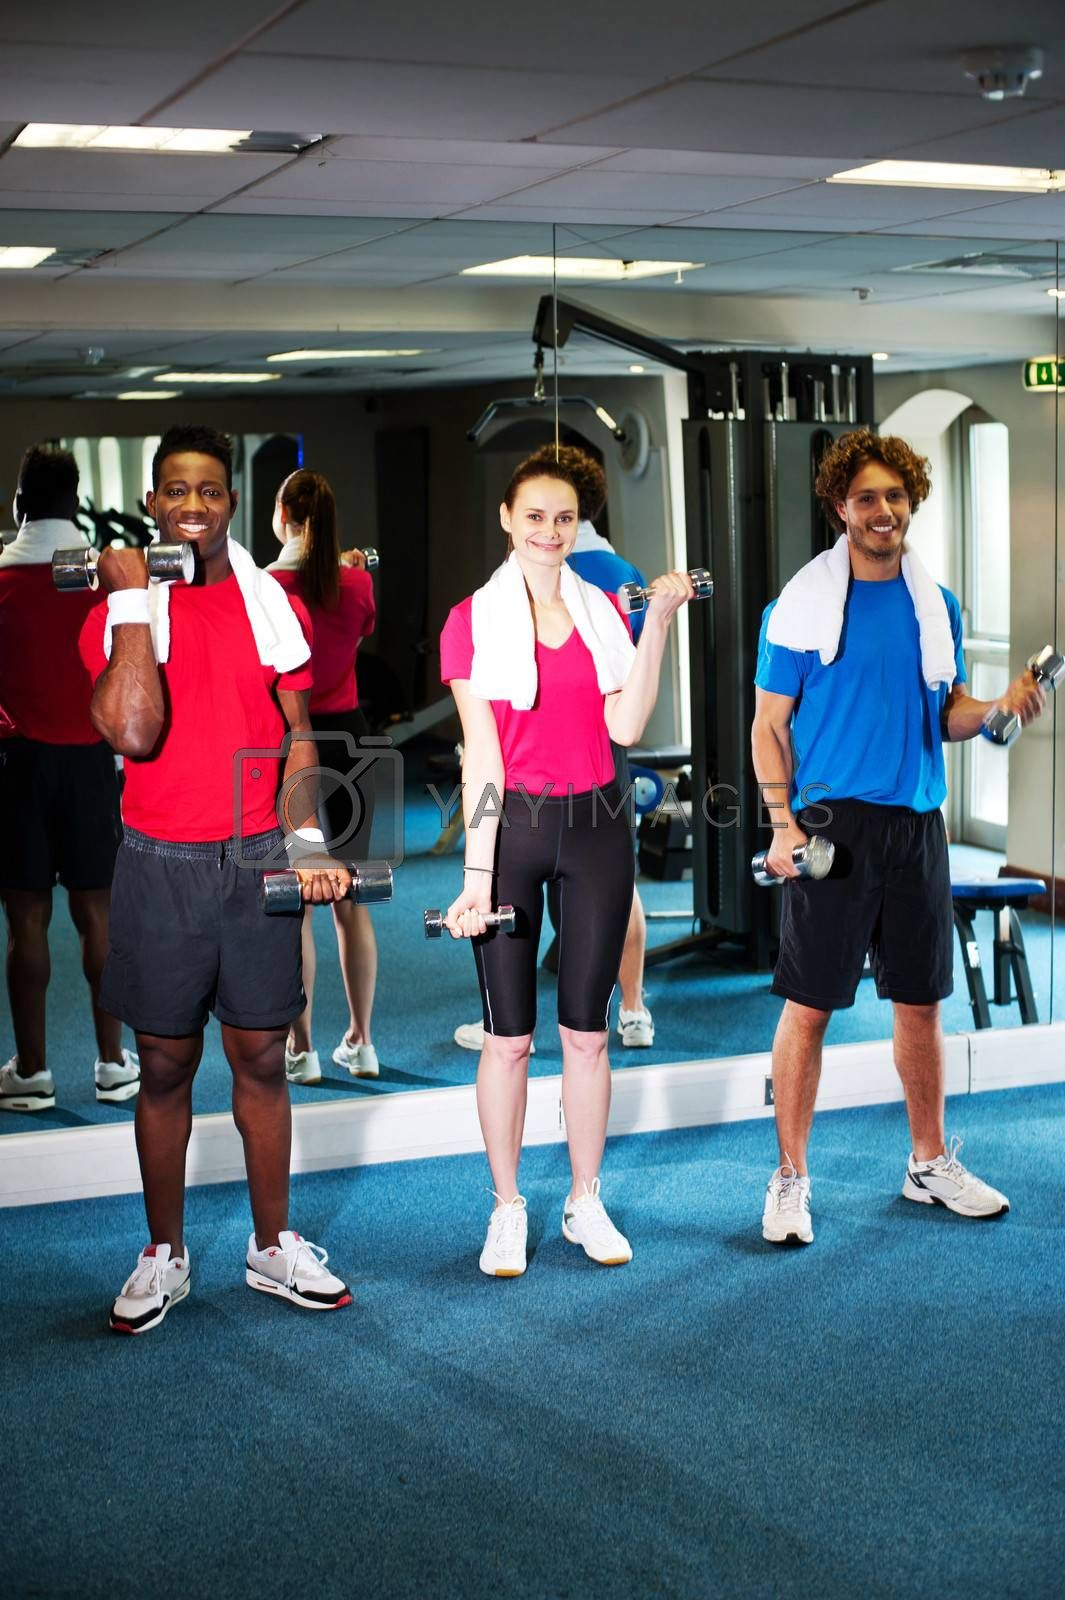 Happy people lifting dumbbells doing biceps exercise